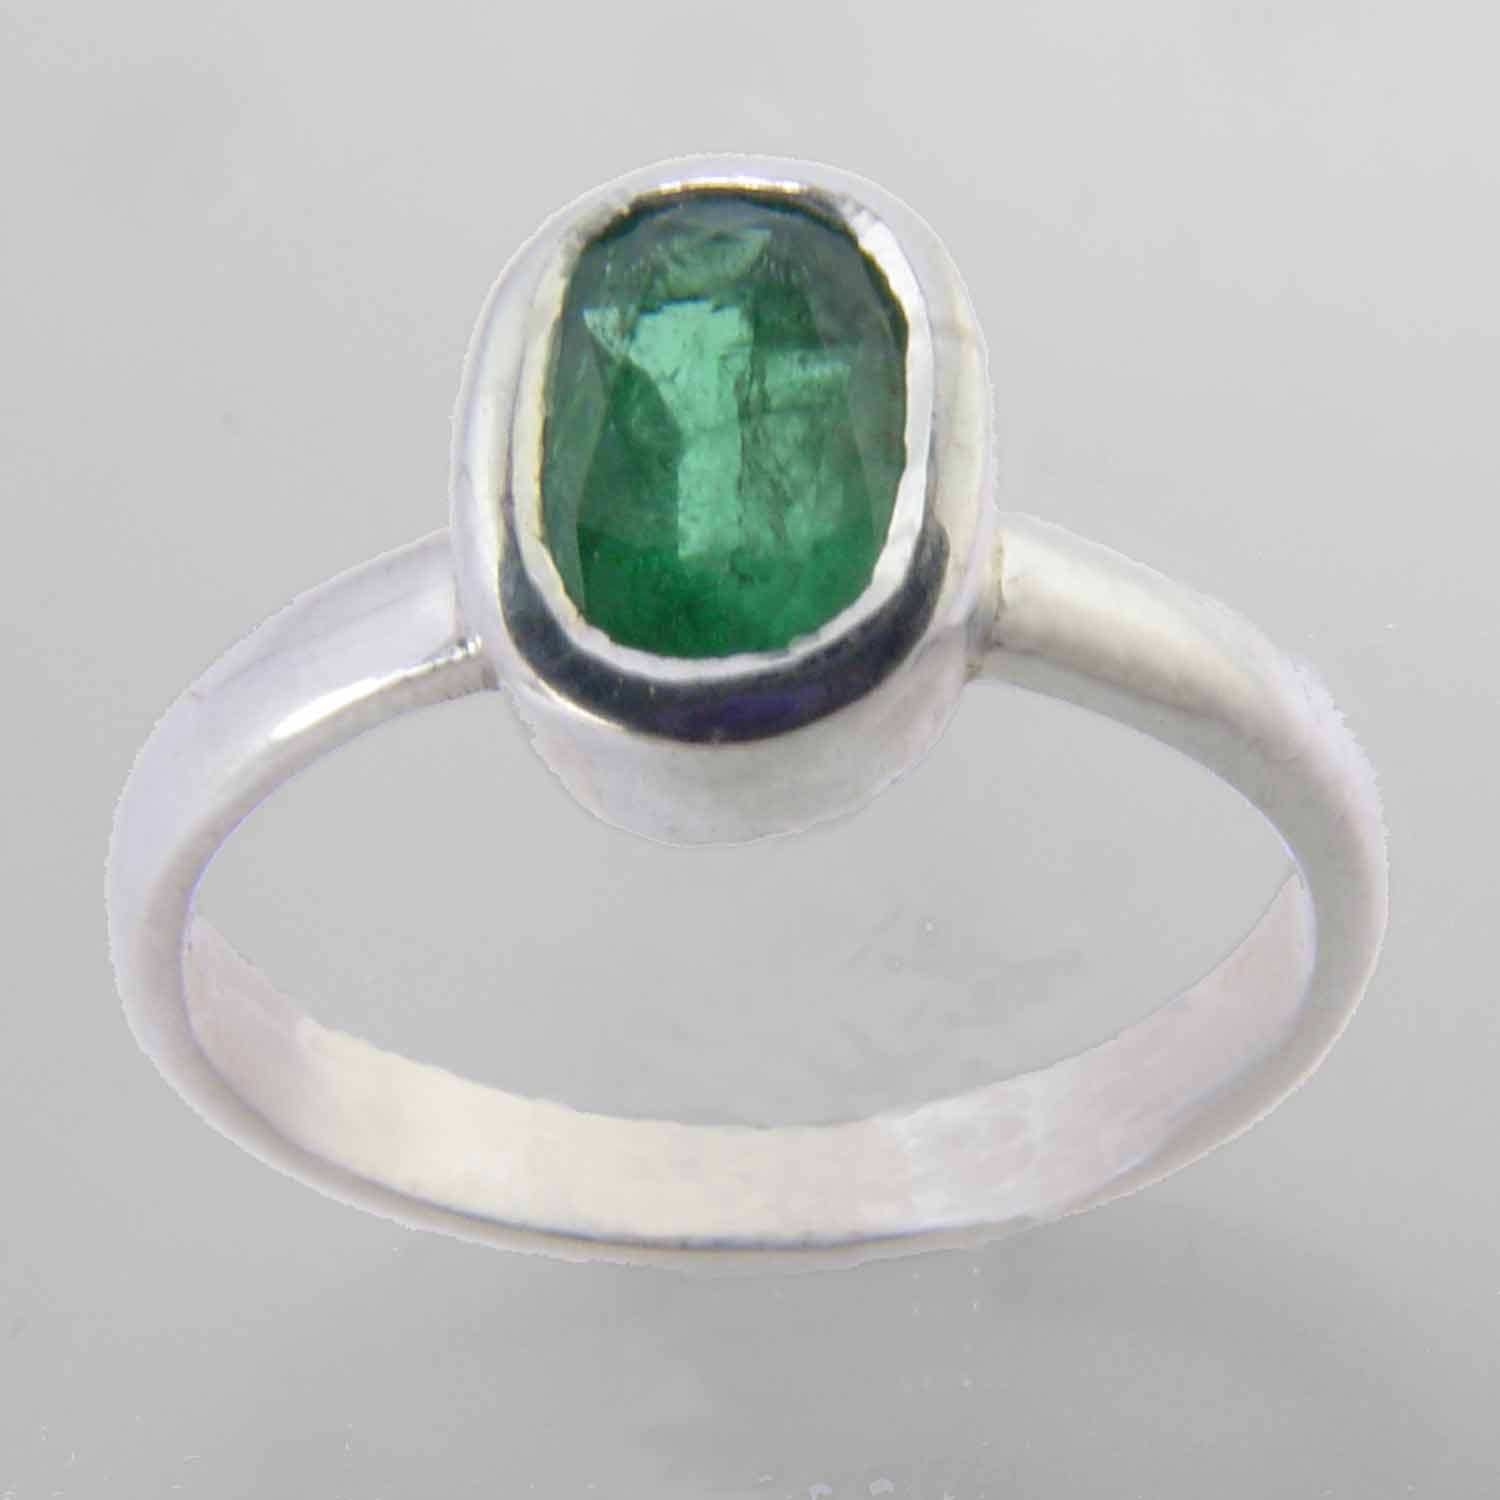 Emerald 2.5 ct Oval Bezel Set Sterling Silver Ring, Size 8